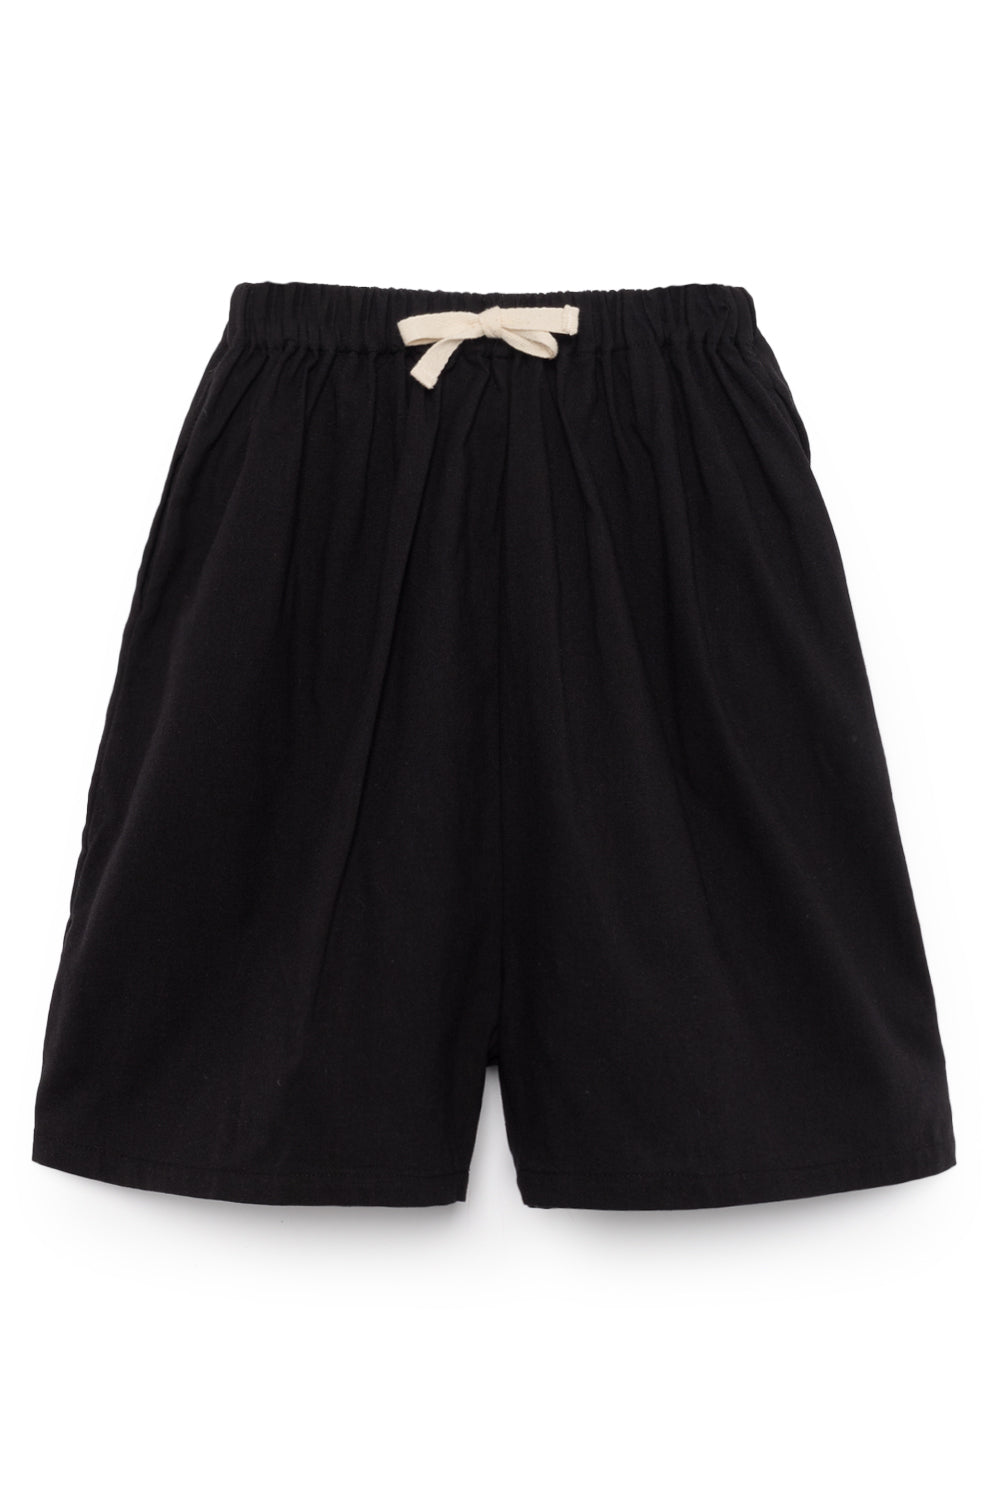 Little Creative Factory Washi Shorts -  Black